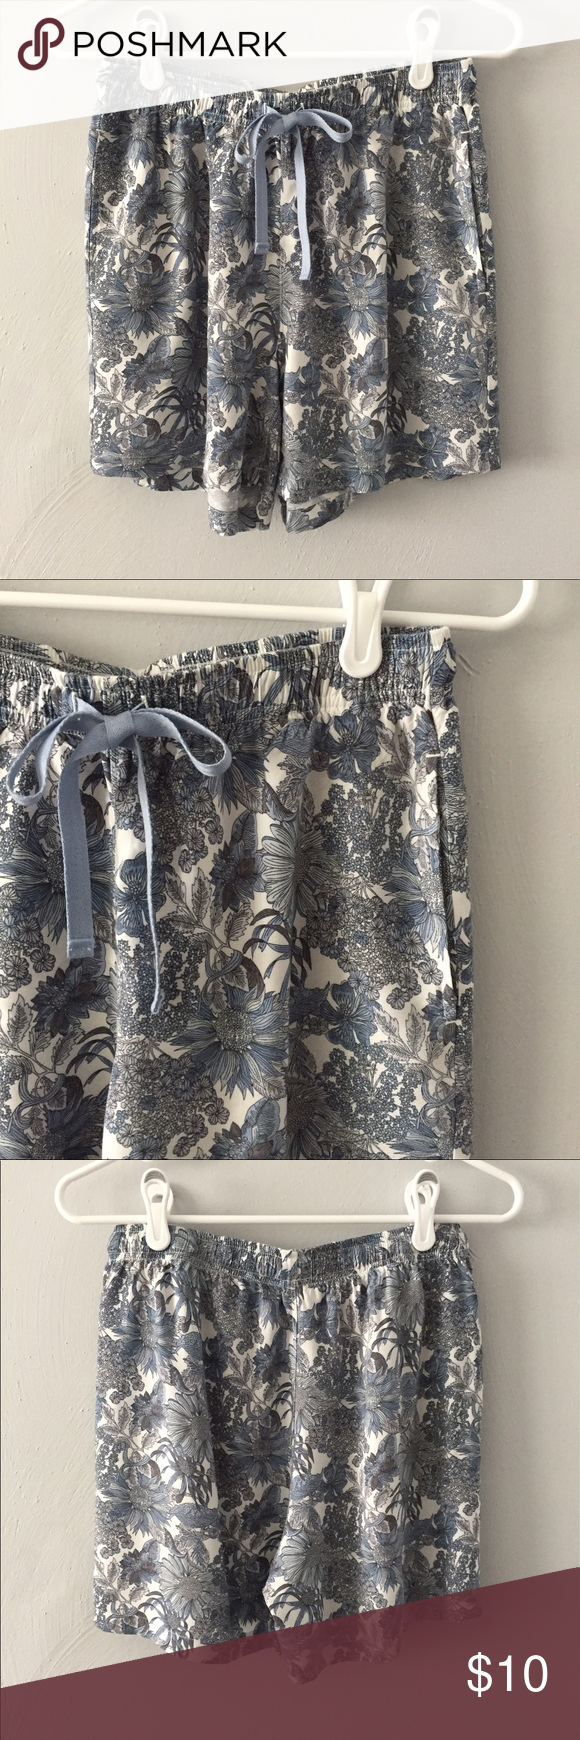 Uniqlo Liberty of London Lounge Shorts This is a pair of super comfy pajama/lounge shorts from Uniqlo. The pattern is a blue Liberty of London floral print. Drawstring waist and side pockets. 100% rayon, great condition. Uniqlo Intimates & Sleepwear Pajamas